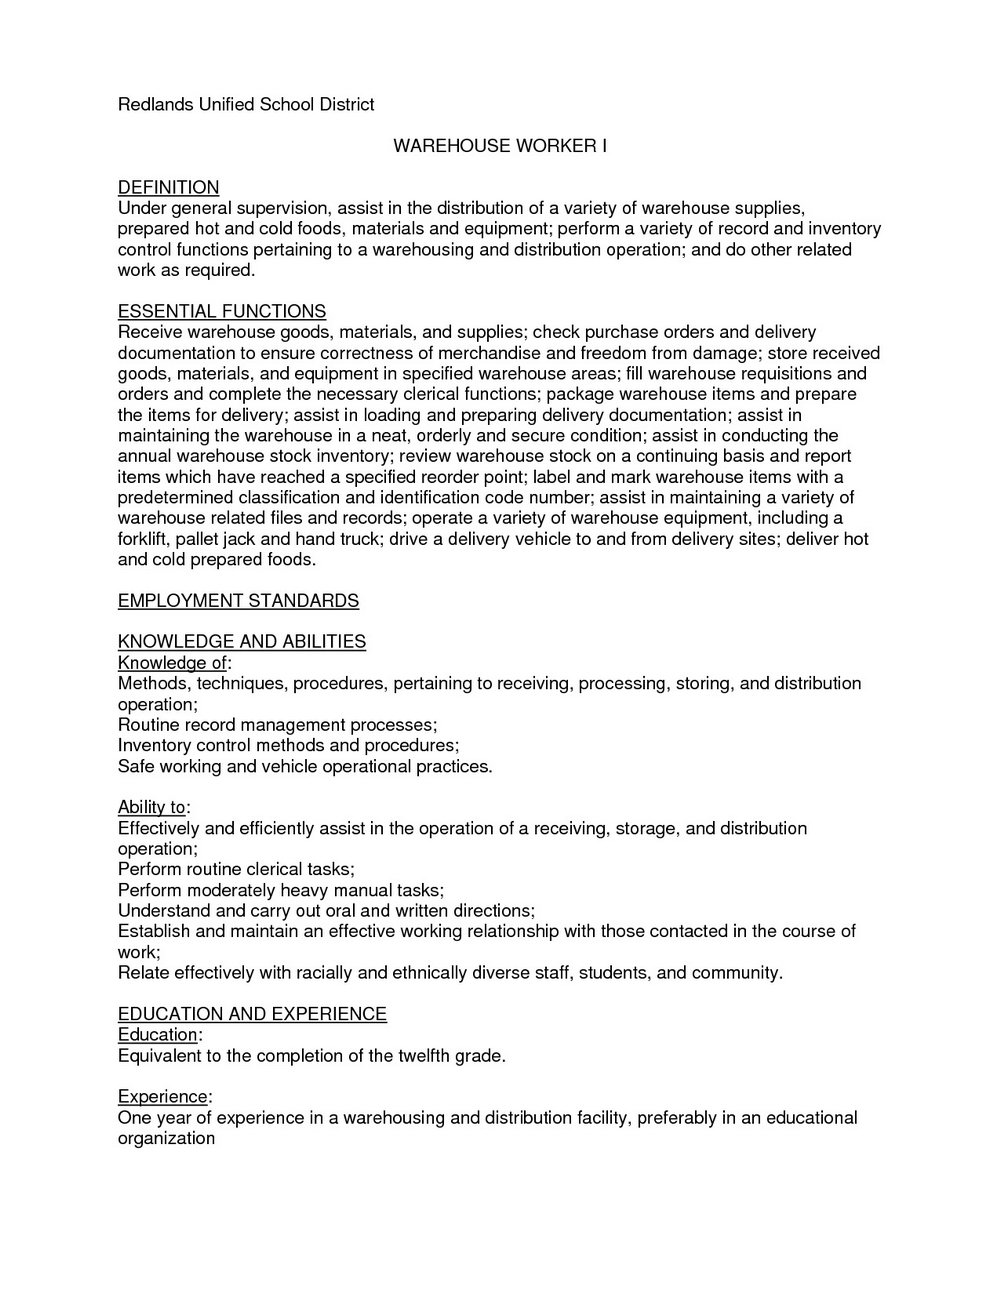 Free Sample Resume Warehouse Worker